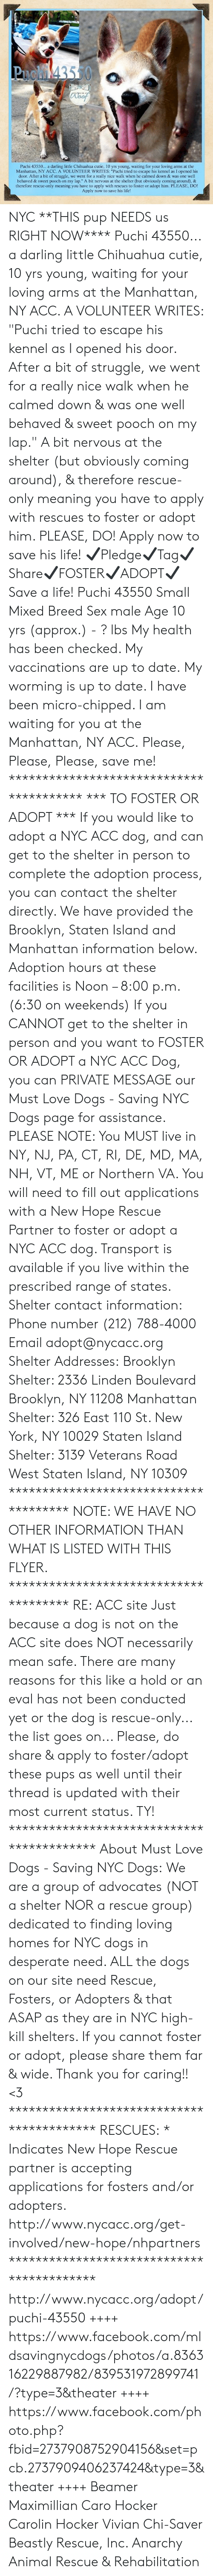 """Chihuahua, Desperate, and Dogs: PRch43550  wWaof  eoUTAD M AT  Puchi 43550.. a darling little Chihuahua cutie, 10 yrs young, waiting for your loving arms at the  Manhattan, NY ACC. A VOLUNTEER WRITES: """"Puchi tried to escape his kennel as I opened his  door. After a bit of struggle, we went for a really nice walk when he calmed down & was one well  behaved & sweet pooch on my lap."""" A bit nervous at the shelter (but obviously coming around), &  therefore rescue-only meaning you have to apply with rescues to foster or adopt him. PLEASE, DO!  Apply now to save his life! NYC **THIS pup NEEDS us RIGHT NOW**** Puchi 43550... a darling little Chihuahua cutie, 10 yrs young, waiting for your loving arms at the Manhattan, NY ACC. A VOLUNTEER WRITES: """"Puchi tried to escape his kennel as I opened his door. After a bit of struggle, we went for a really nice walk when he calmed down & was one well behaved & sweet pooch on my lap."""" A bit nervous at the shelter (but obviously coming around), & therefore rescue-only meaning you have to apply with rescues to foster or adopt him. PLEASE, DO! Apply now to save his life!   ✔Pledge✔Tag✔Share✔FOSTER✔ADOPT✔Save a life!  Puchi 43550 Small Mixed Breed Sex male Age 10 yrs (approx.) - ? lbs  My health has been checked.  My vaccinations are up to date. My worming is up to date.  I have been micro-chipped.   I am waiting for you at the Manhattan, NY ACC. Please, Please, Please, save me!  **************************************** *** TO FOSTER OR ADOPT ***   If you would like to adopt a NYC ACC dog, and can get to the shelter in person to complete the adoption process, you can contact the shelter directly. We have provided the Brooklyn, Staten Island and Manhattan information below. Adoption hours at these facilities is Noon – 8:00 p.m. (6:30 on weekends)  If you CANNOT get to the shelter in person and you want to FOSTER OR ADOPT a NYC ACC Dog, you can PRIVATE MESSAGE our Must Love Dogs - Saving NYC Dogs page for assistance. PLEASE NOTE: You MUST l"""